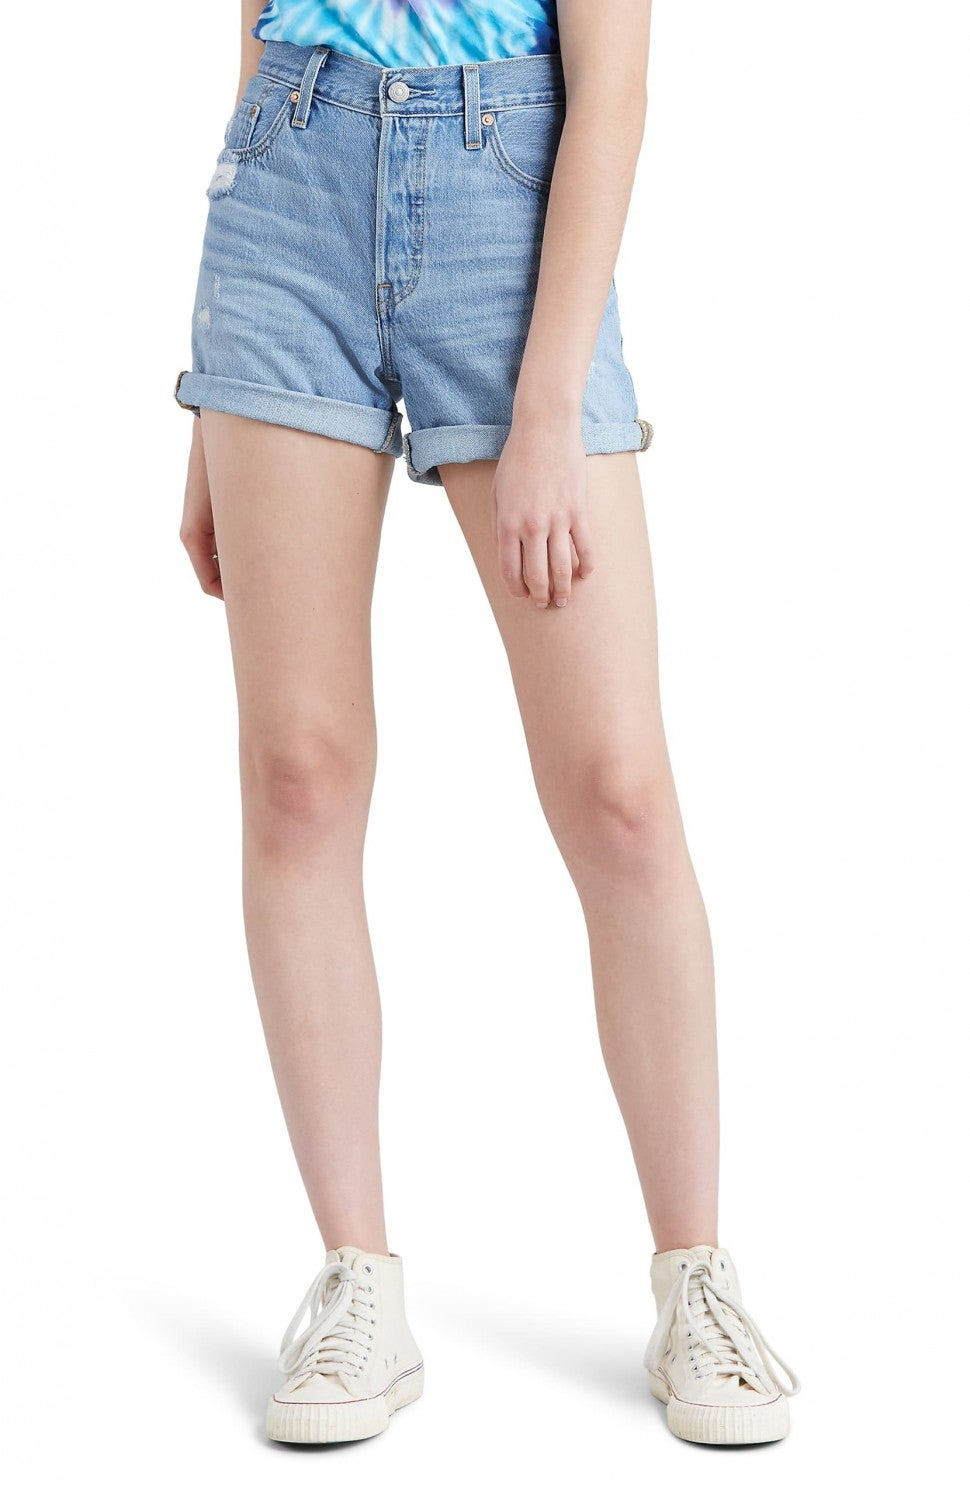 Levi's 501 long denim shorts